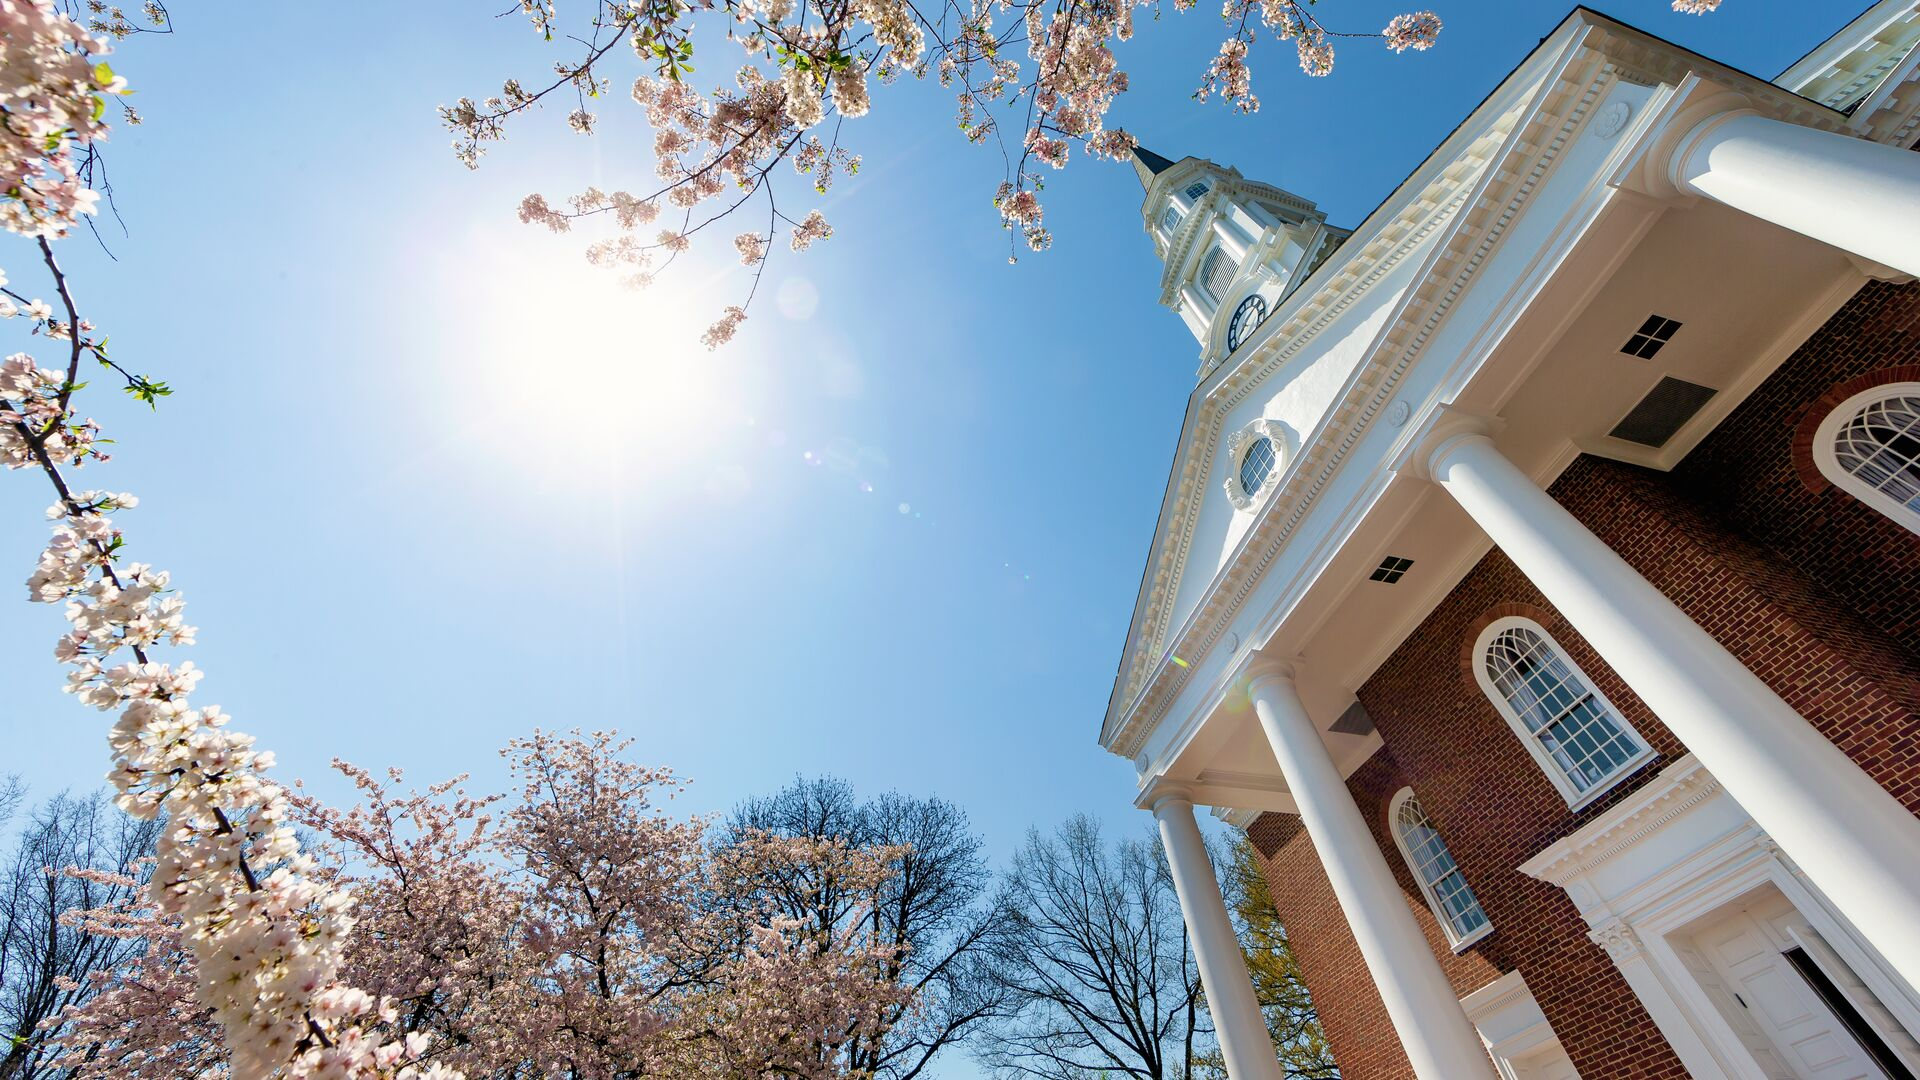 View of Memorial Chapel looking up from the ground through cherry blossoms with a blue sky.